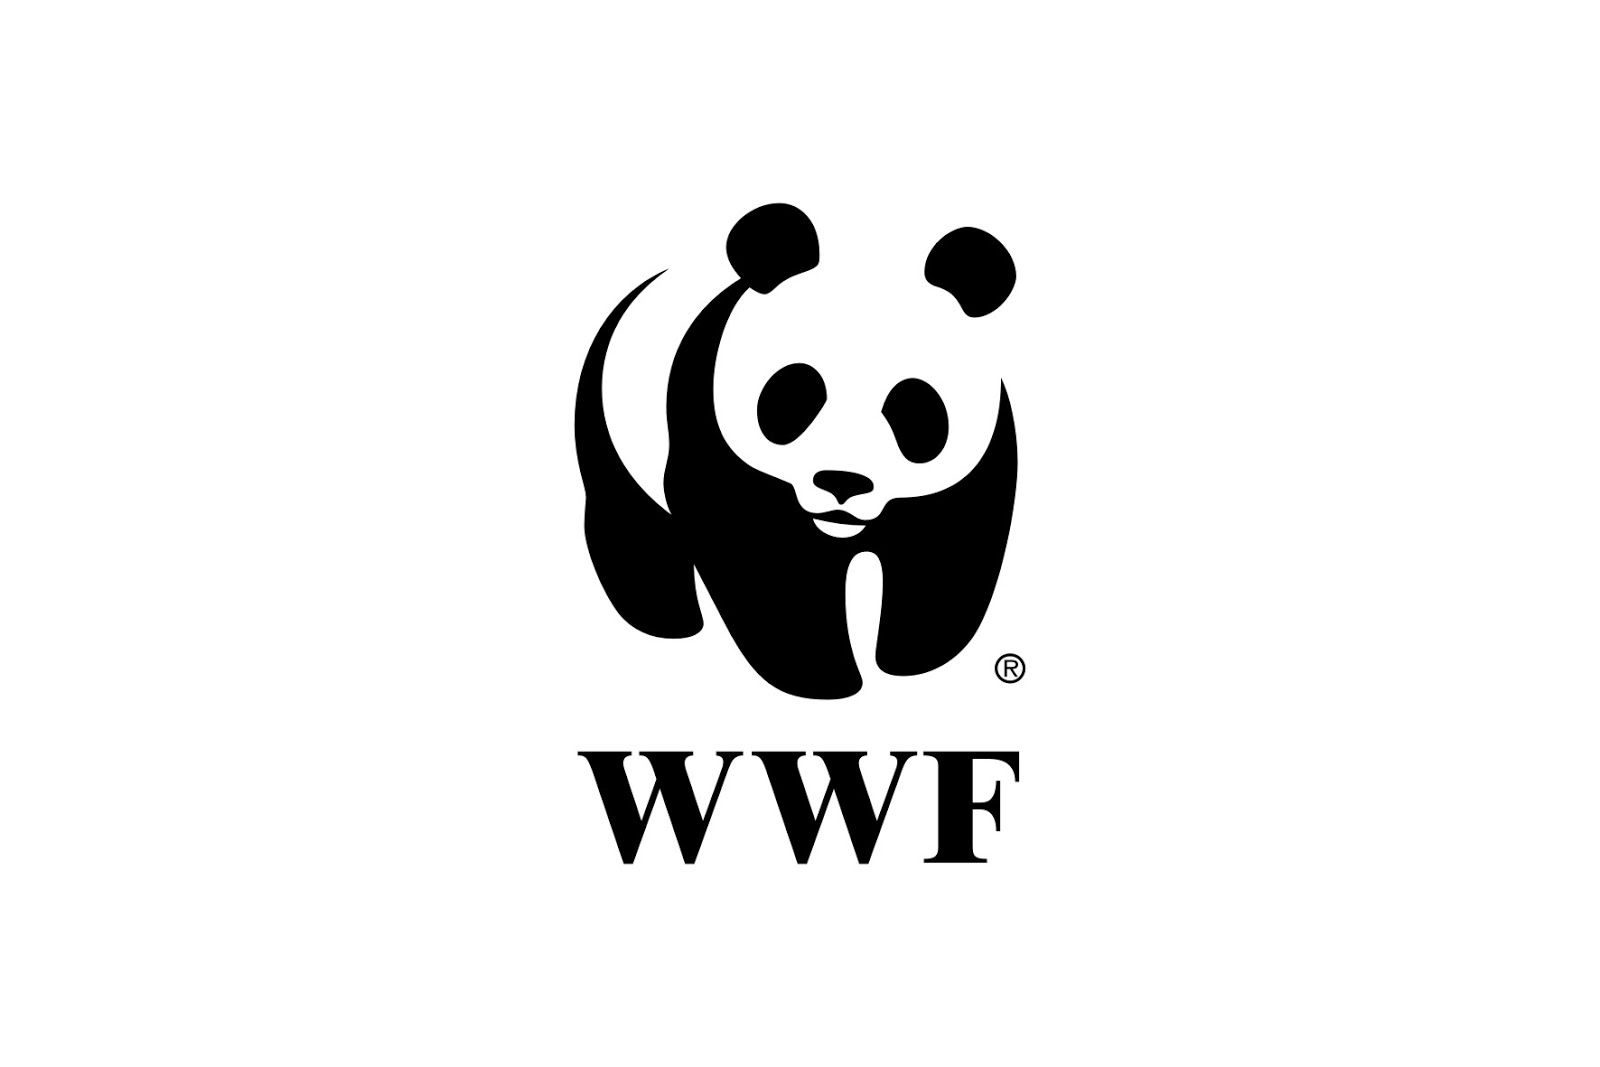 WWF Logo - WWF Panda Logo】| WWF Panda Logo Vector Free Download